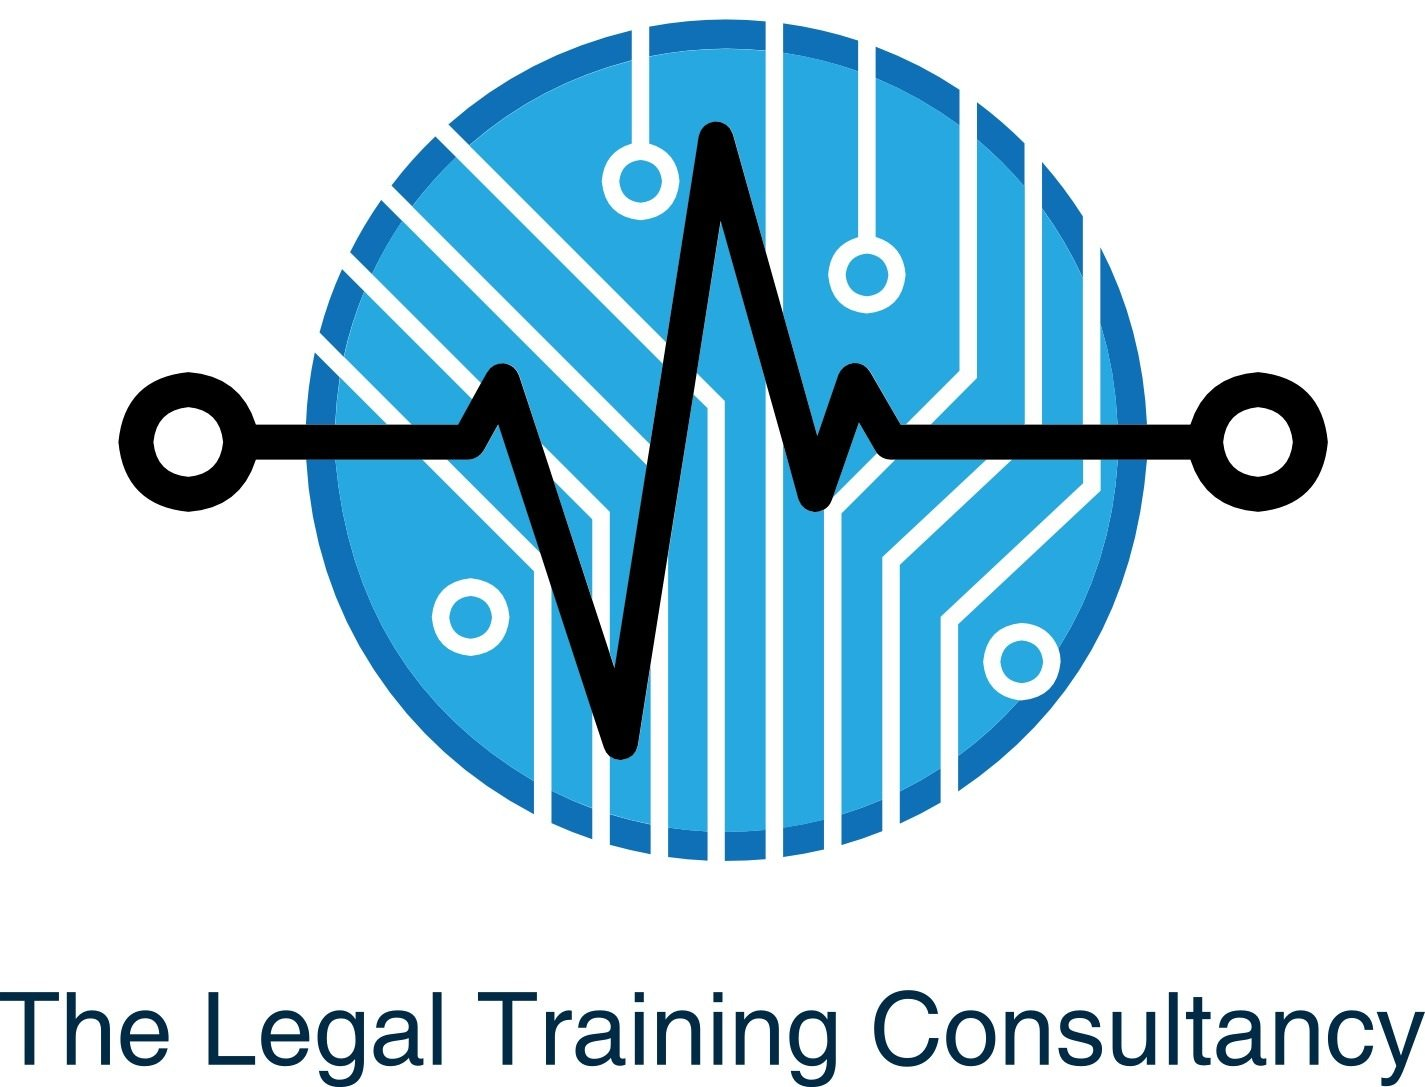 The Legal Training Consultancy Retina Logo